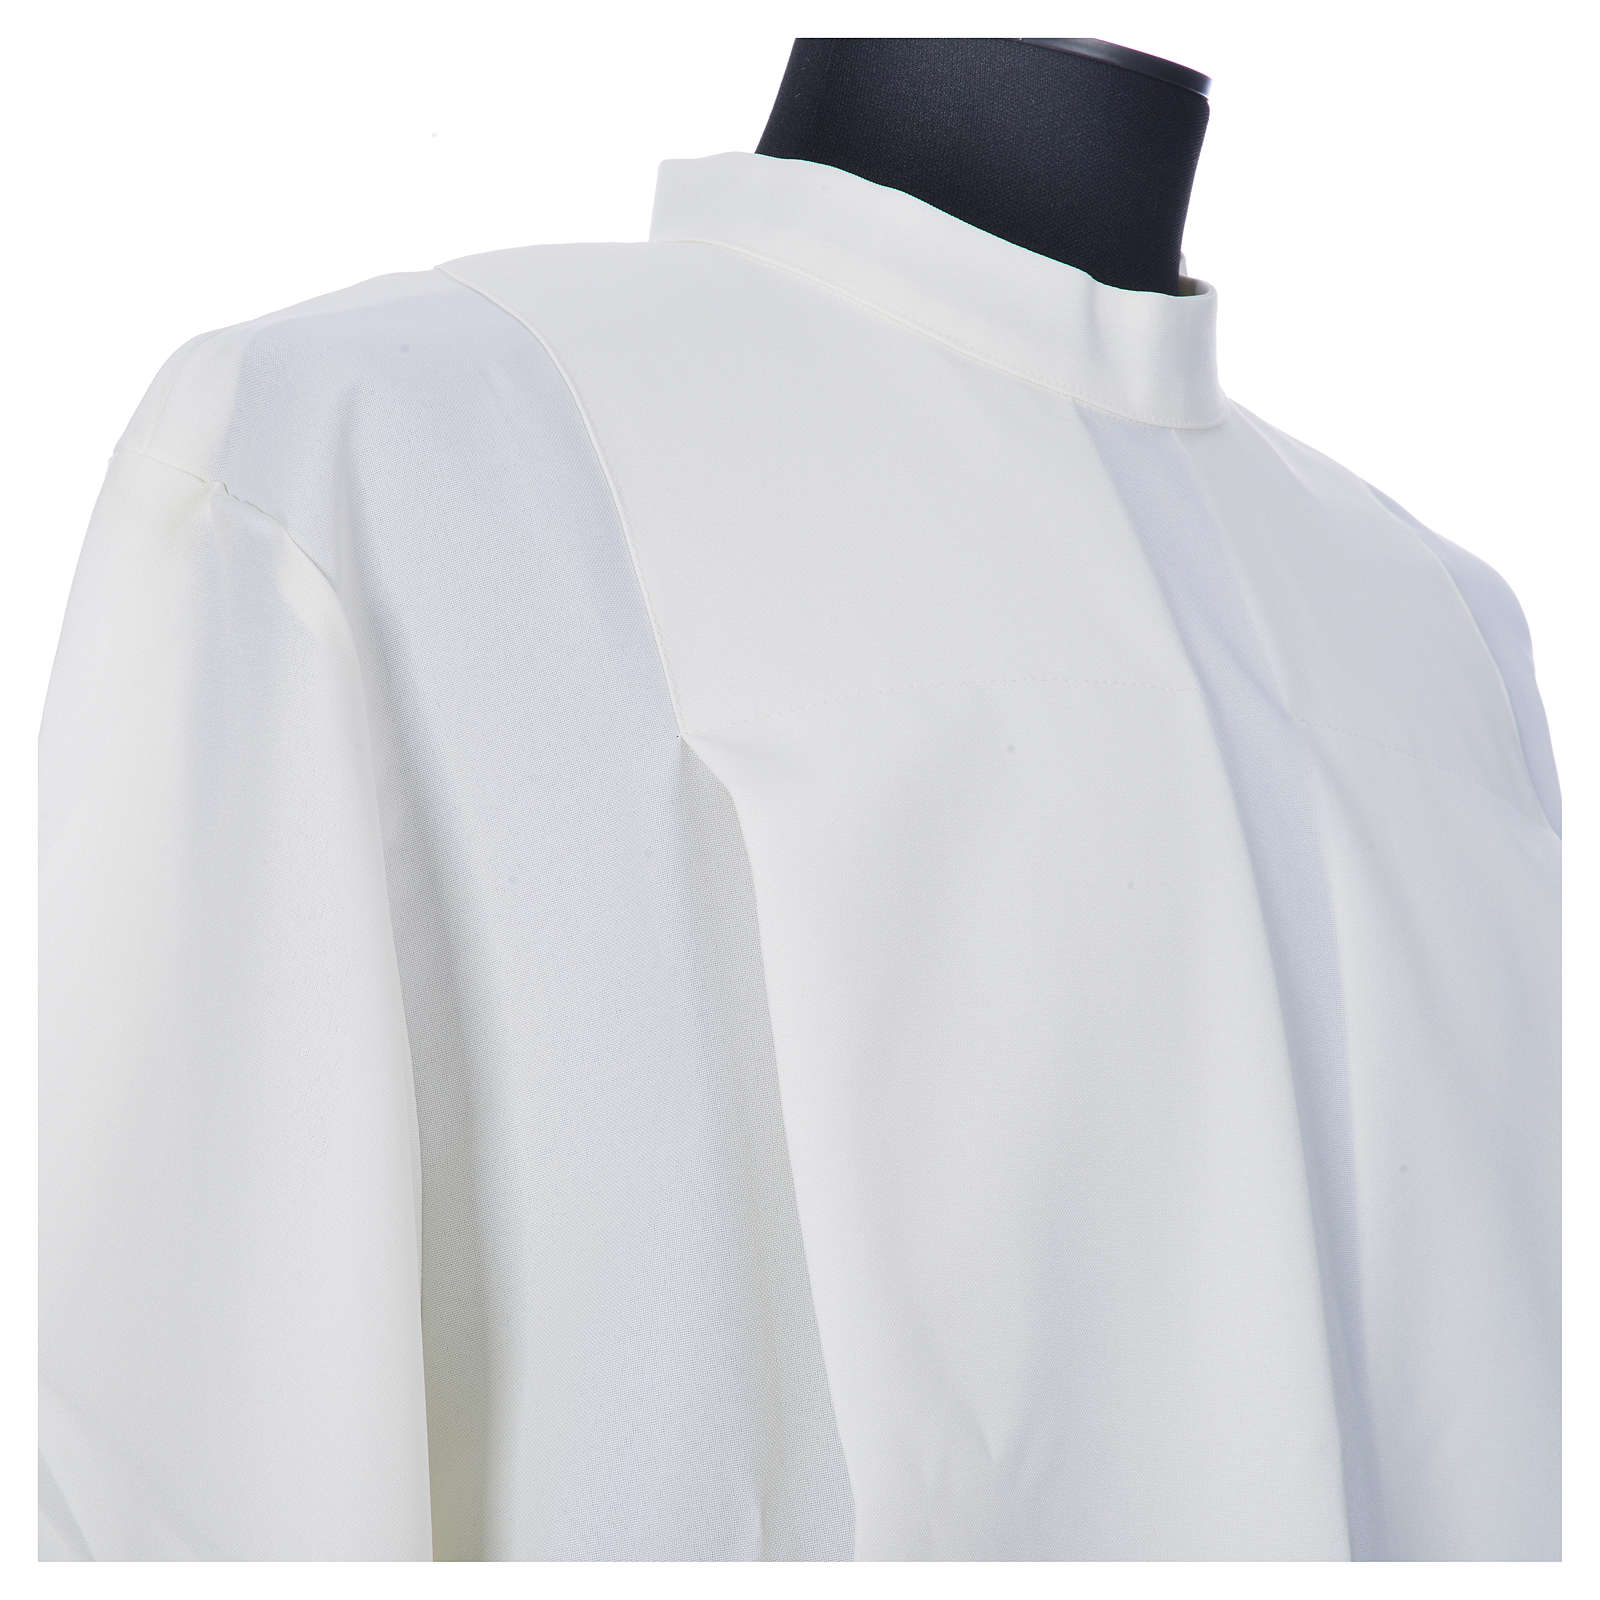 Ivory alb in polyester, gigliuccio hemstitch, zipper on shoulder 4